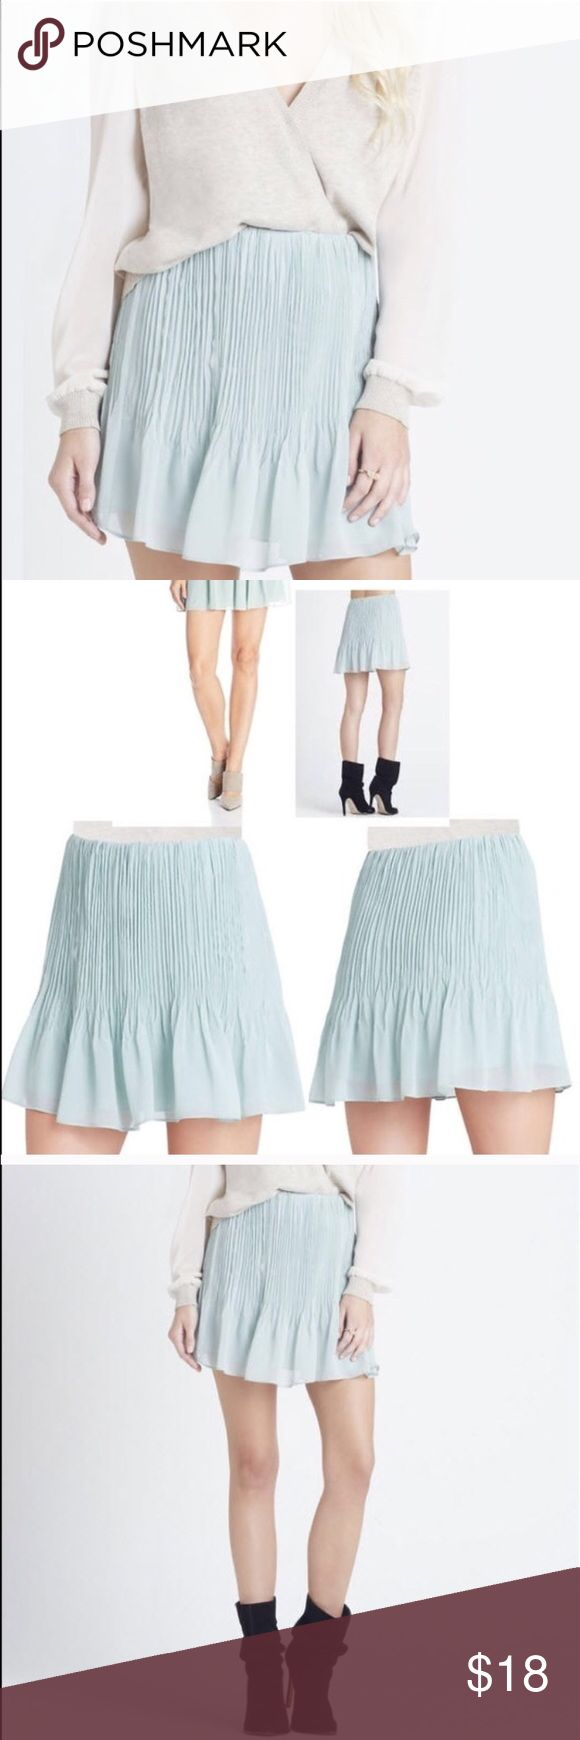 BCBG pleated mini skirt size M in Jadeite BCBGeneration pleated mini skirt size M in Jadeite. New with tag. Retail $78 BCBGeneration Skirts Mini